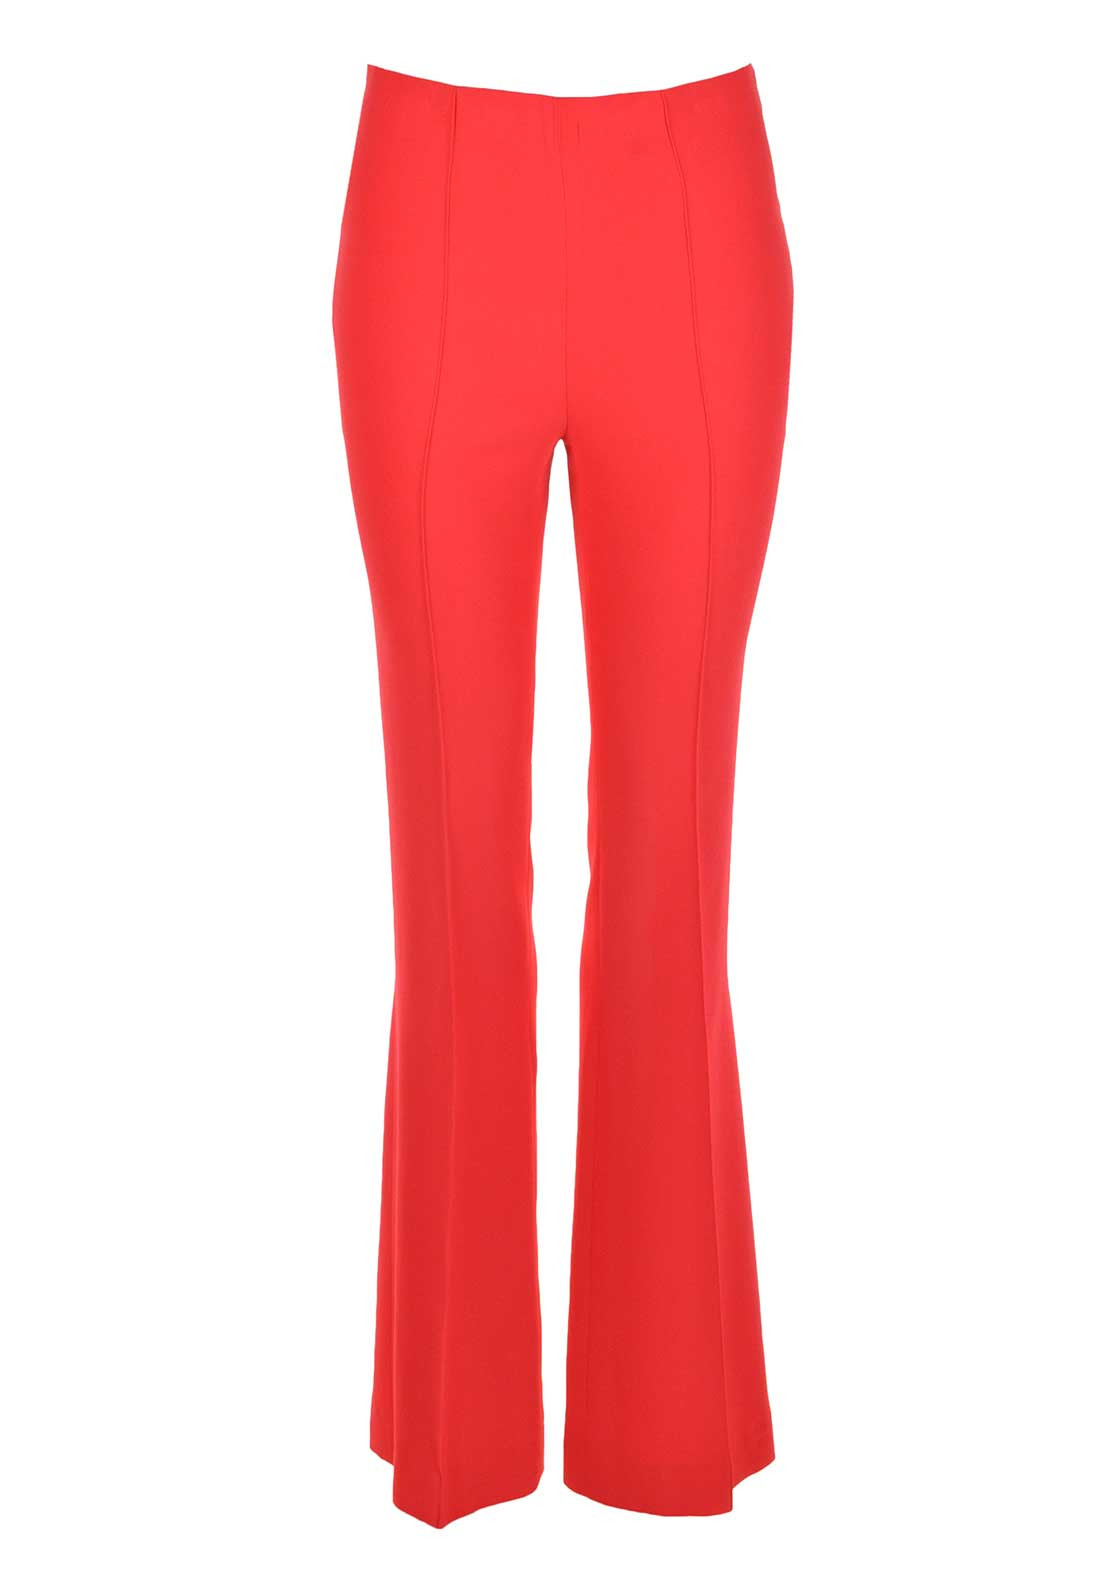 Oui Bootcut Trousers, Coral Red